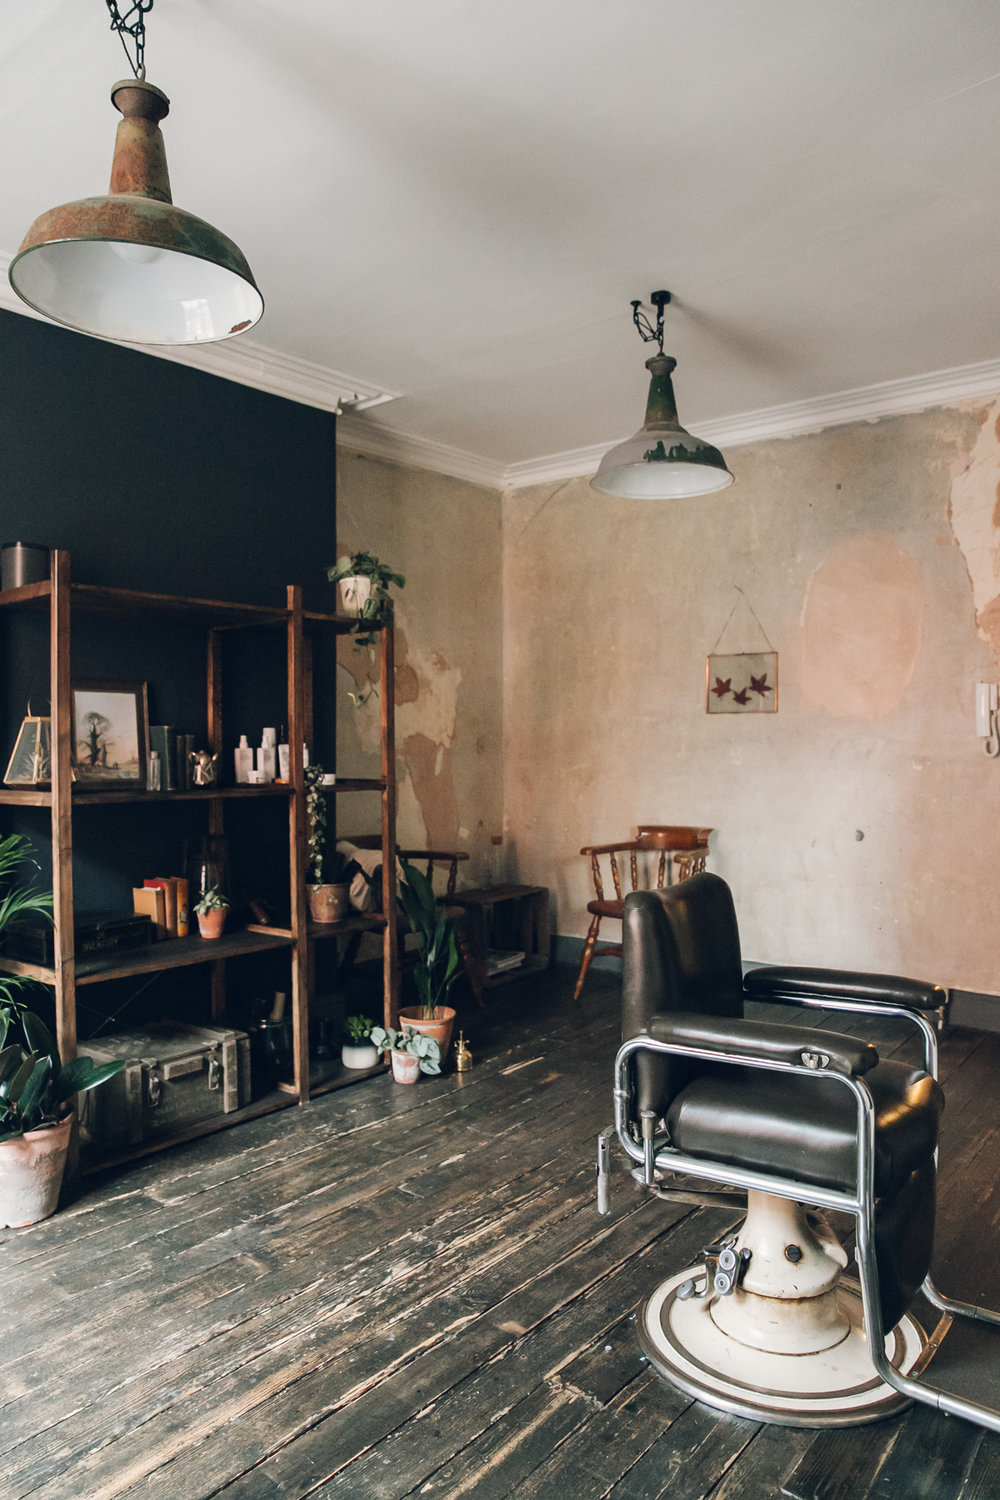 Inside Kojo & Lee, a plant-filled hair salon in Sheffield.